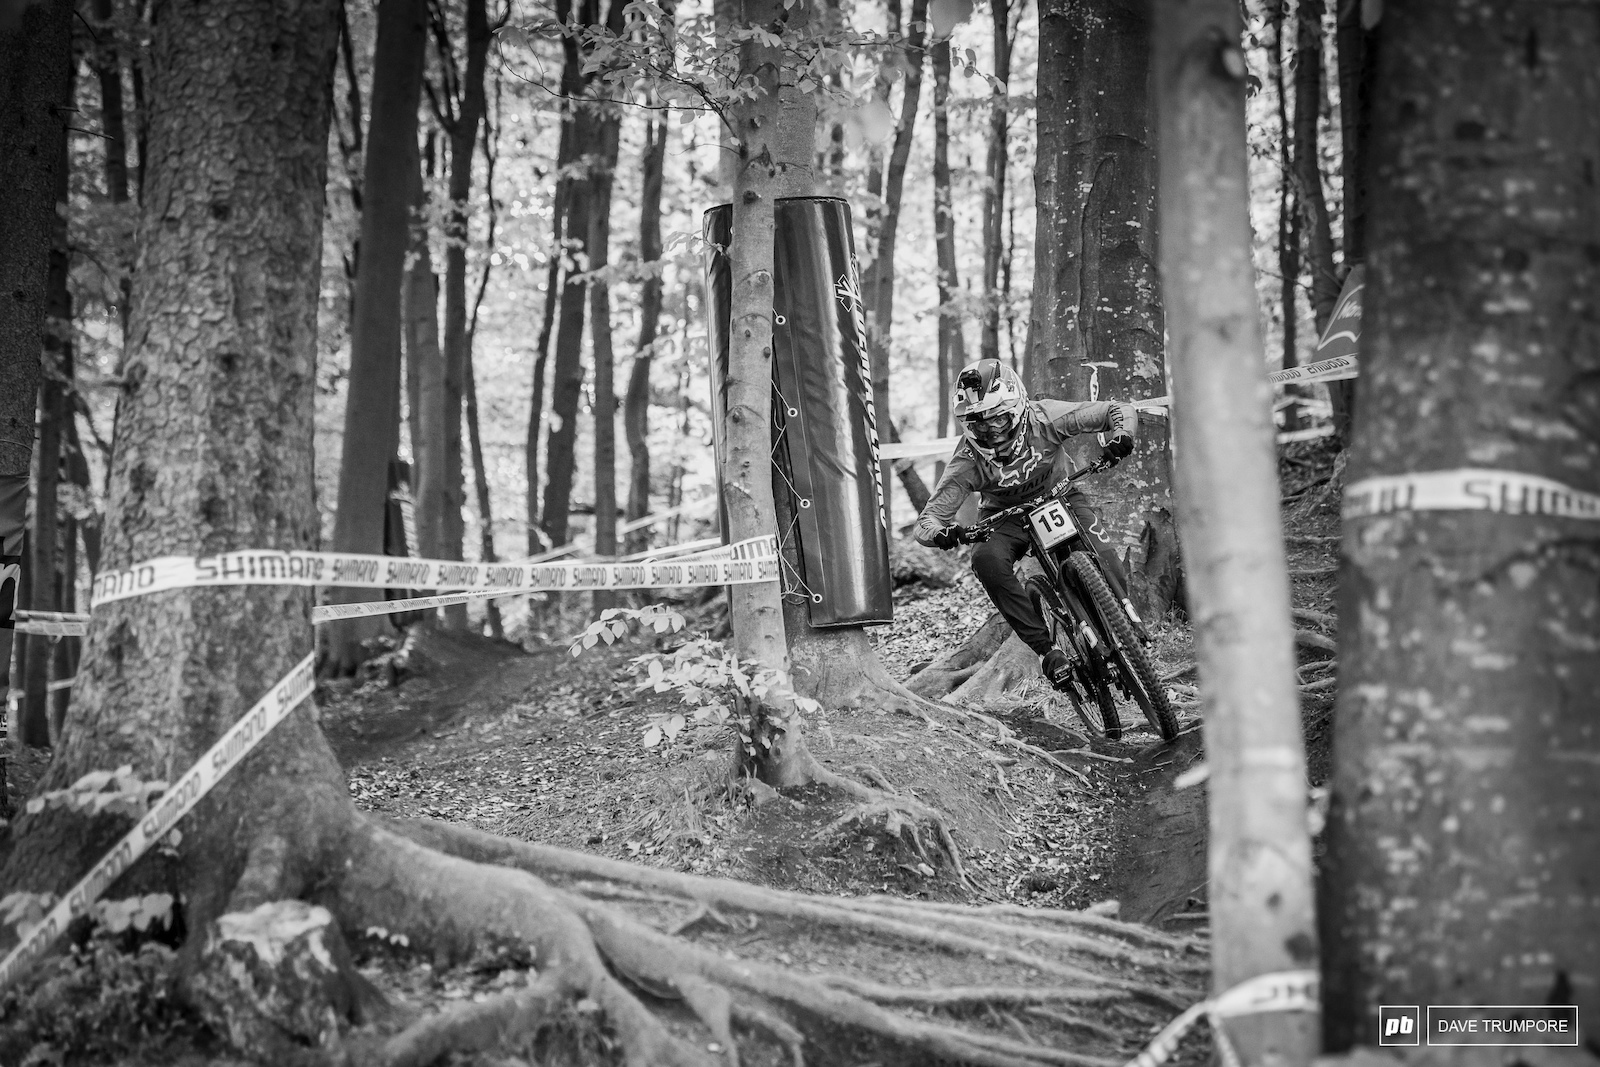 Finn Iles battling it out with the roots in the first section of woods